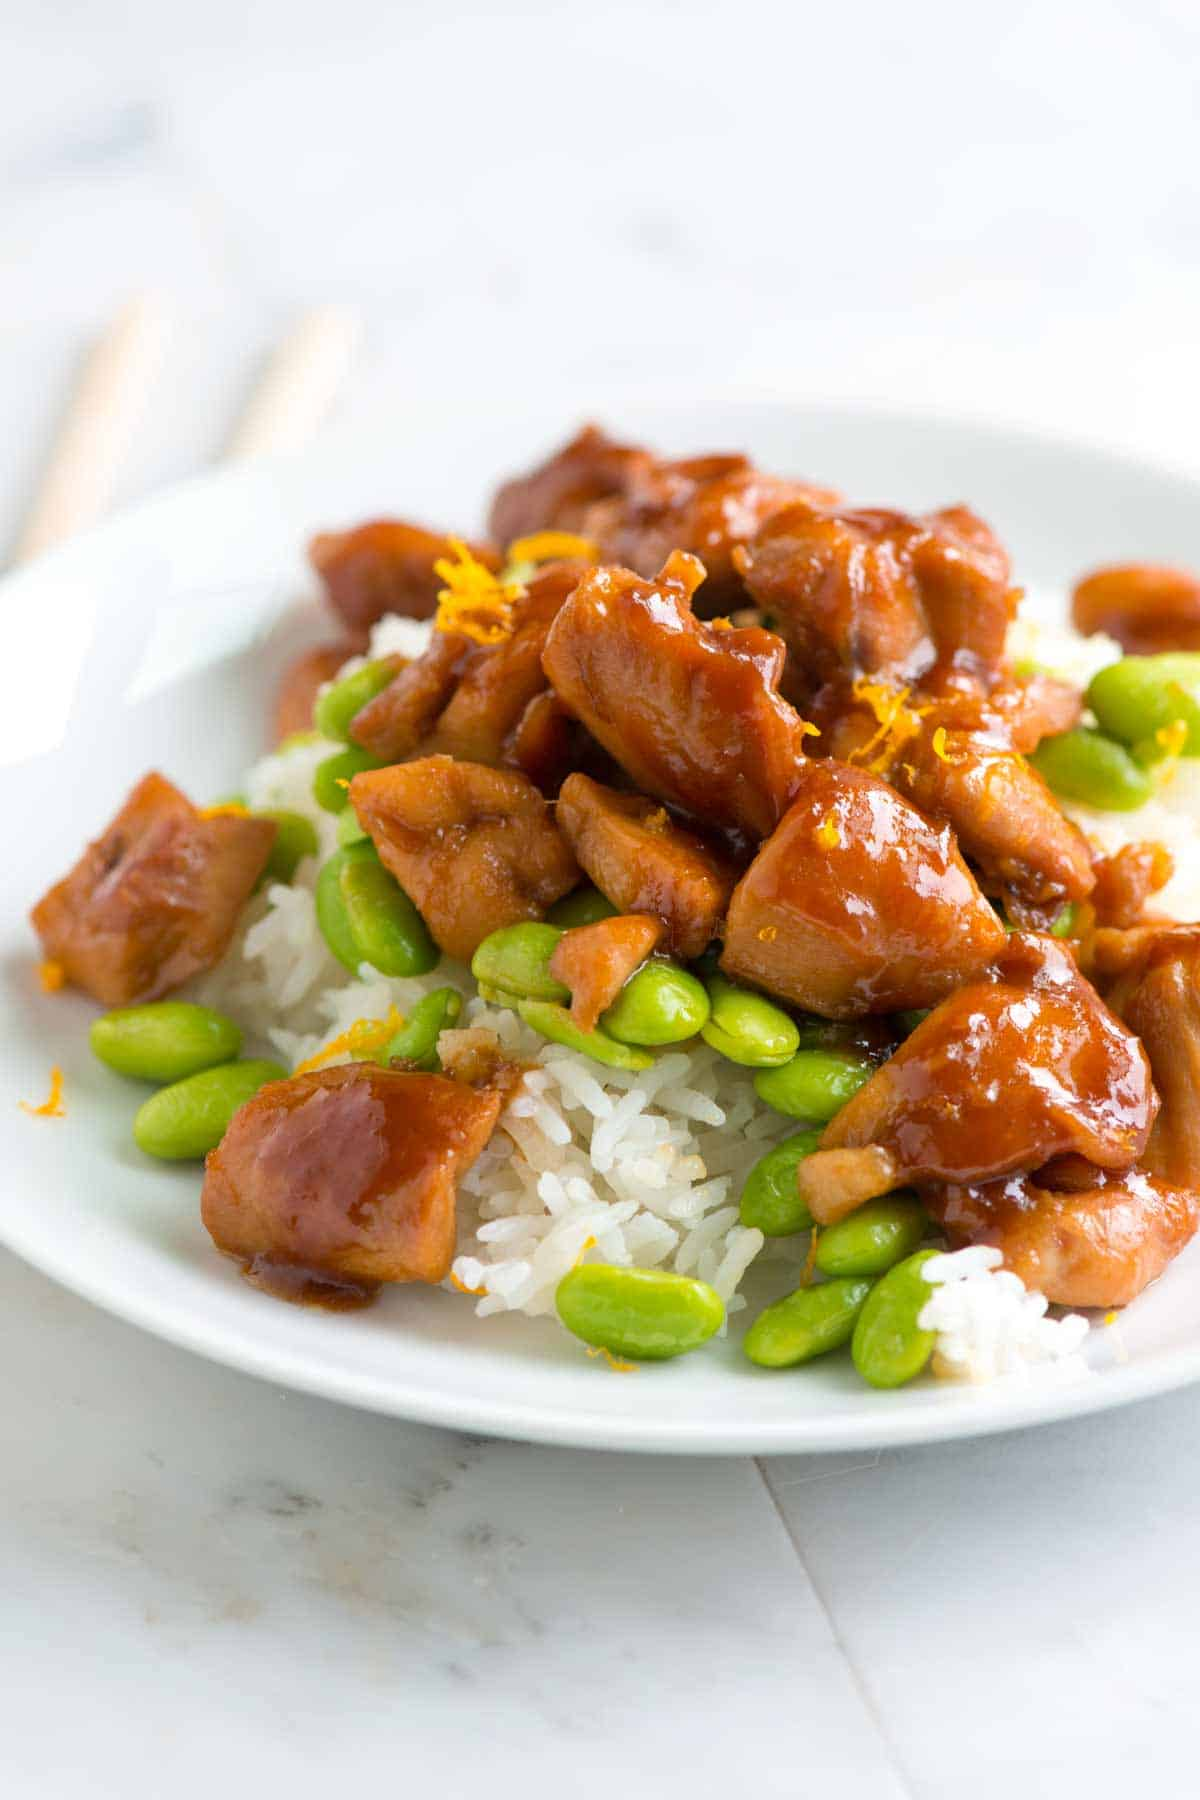 How to Make the Best Teriyaki Chicken in 30 Minutes